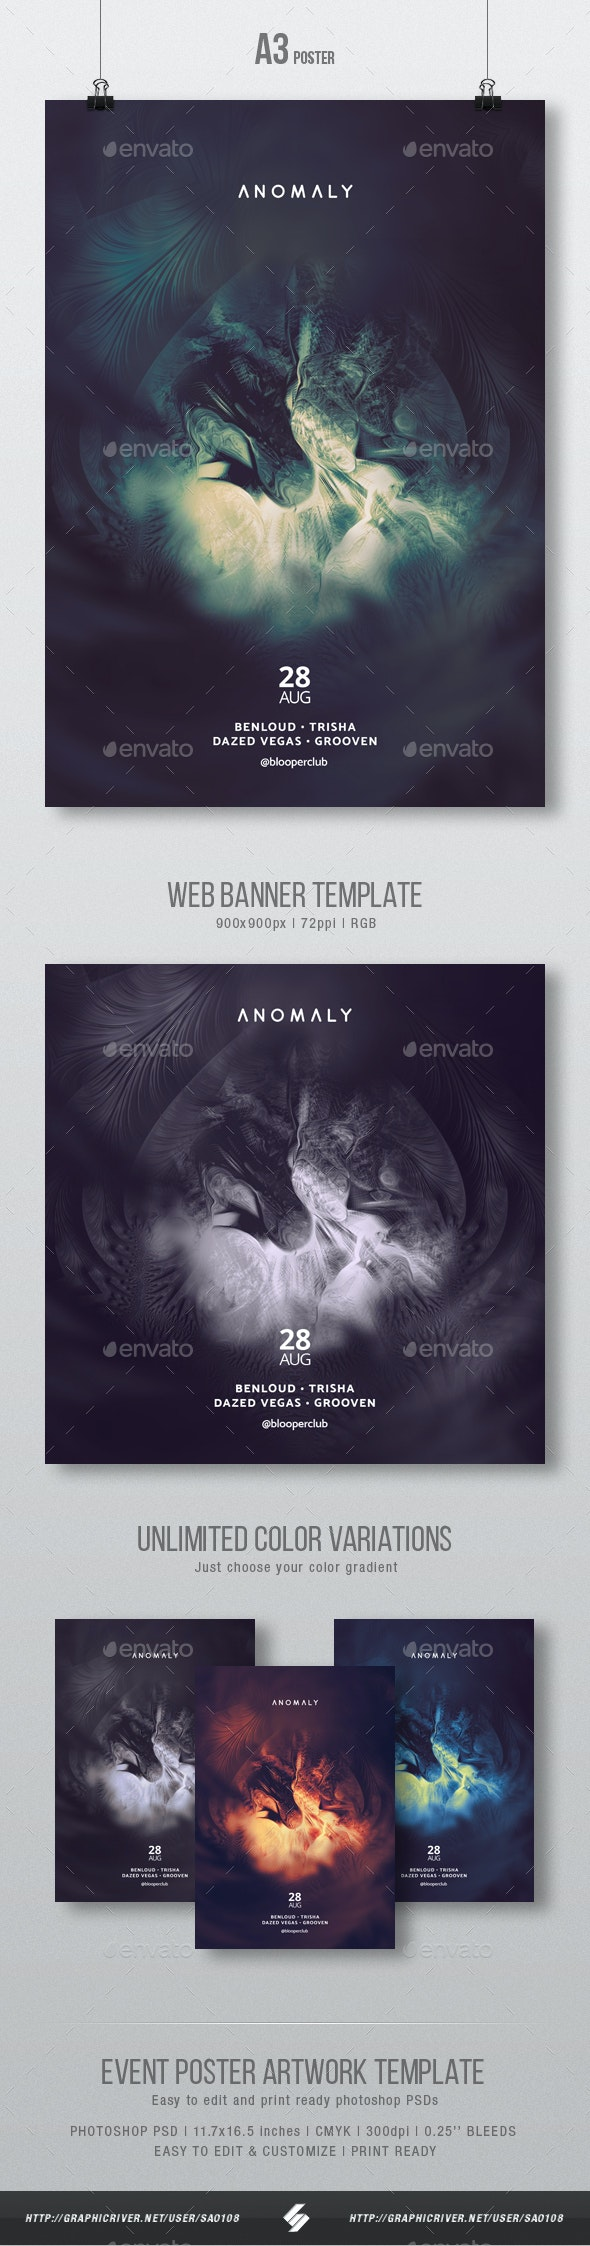 Anomaly - Minimal Party Flyer / Poster Artwork Template A3 - Clubs & Parties Events